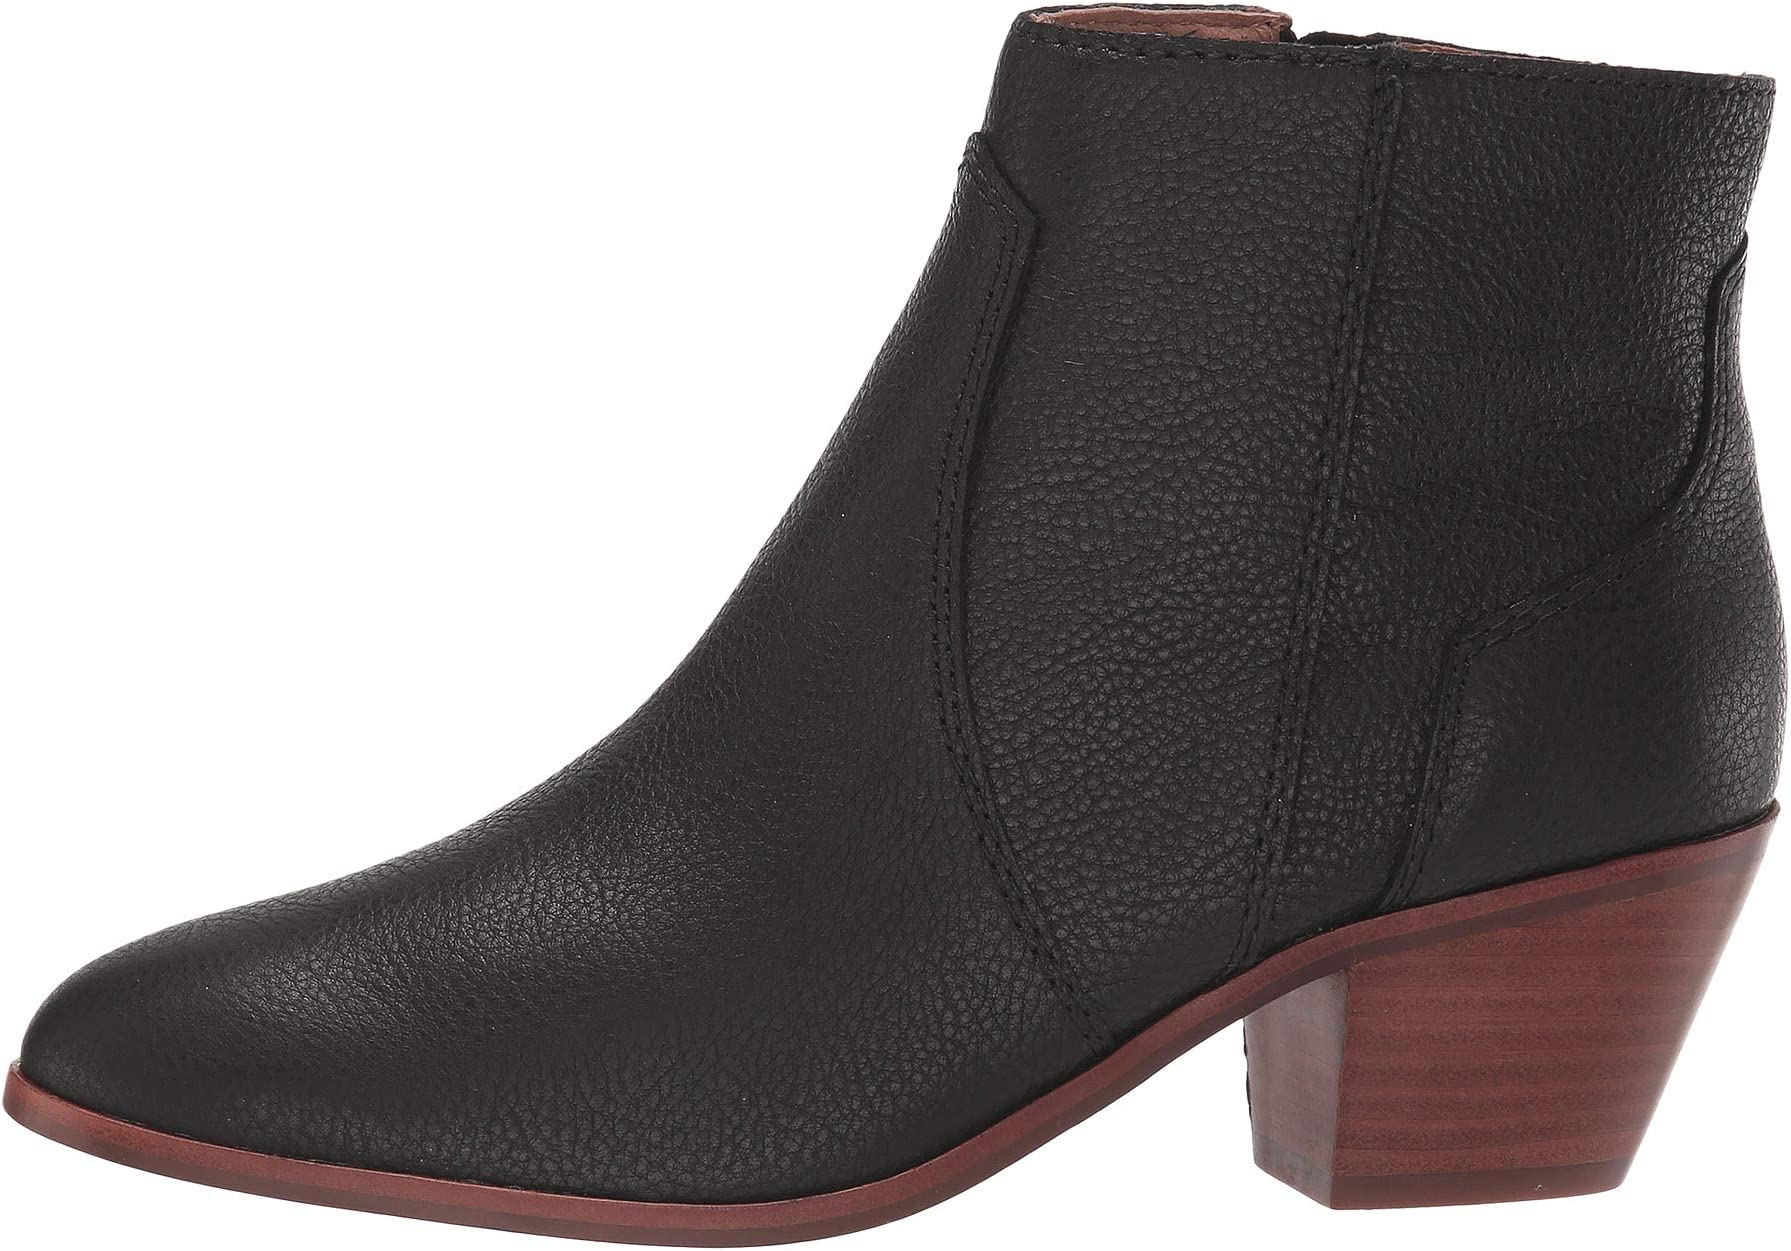 Madewell Gordon Western Boot | Women's shoes | 2020 Newest